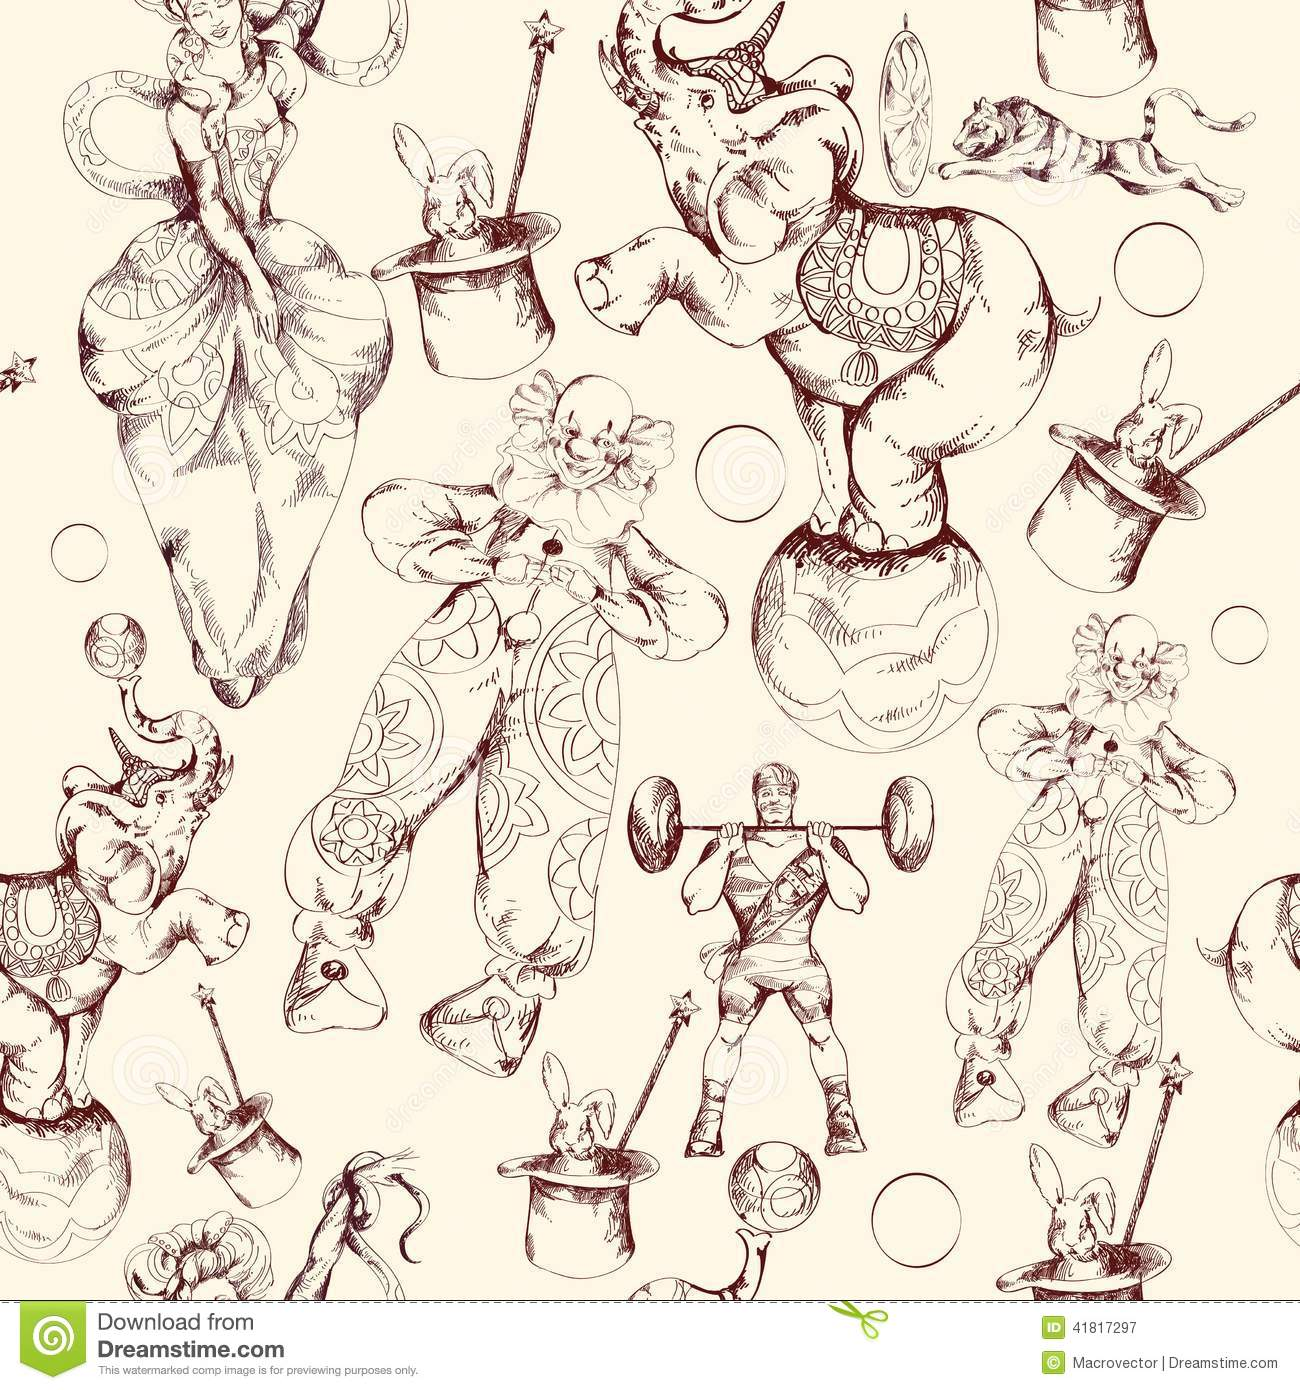 Circus doodle sketch seamless pattern stock vector image for Sketch online free